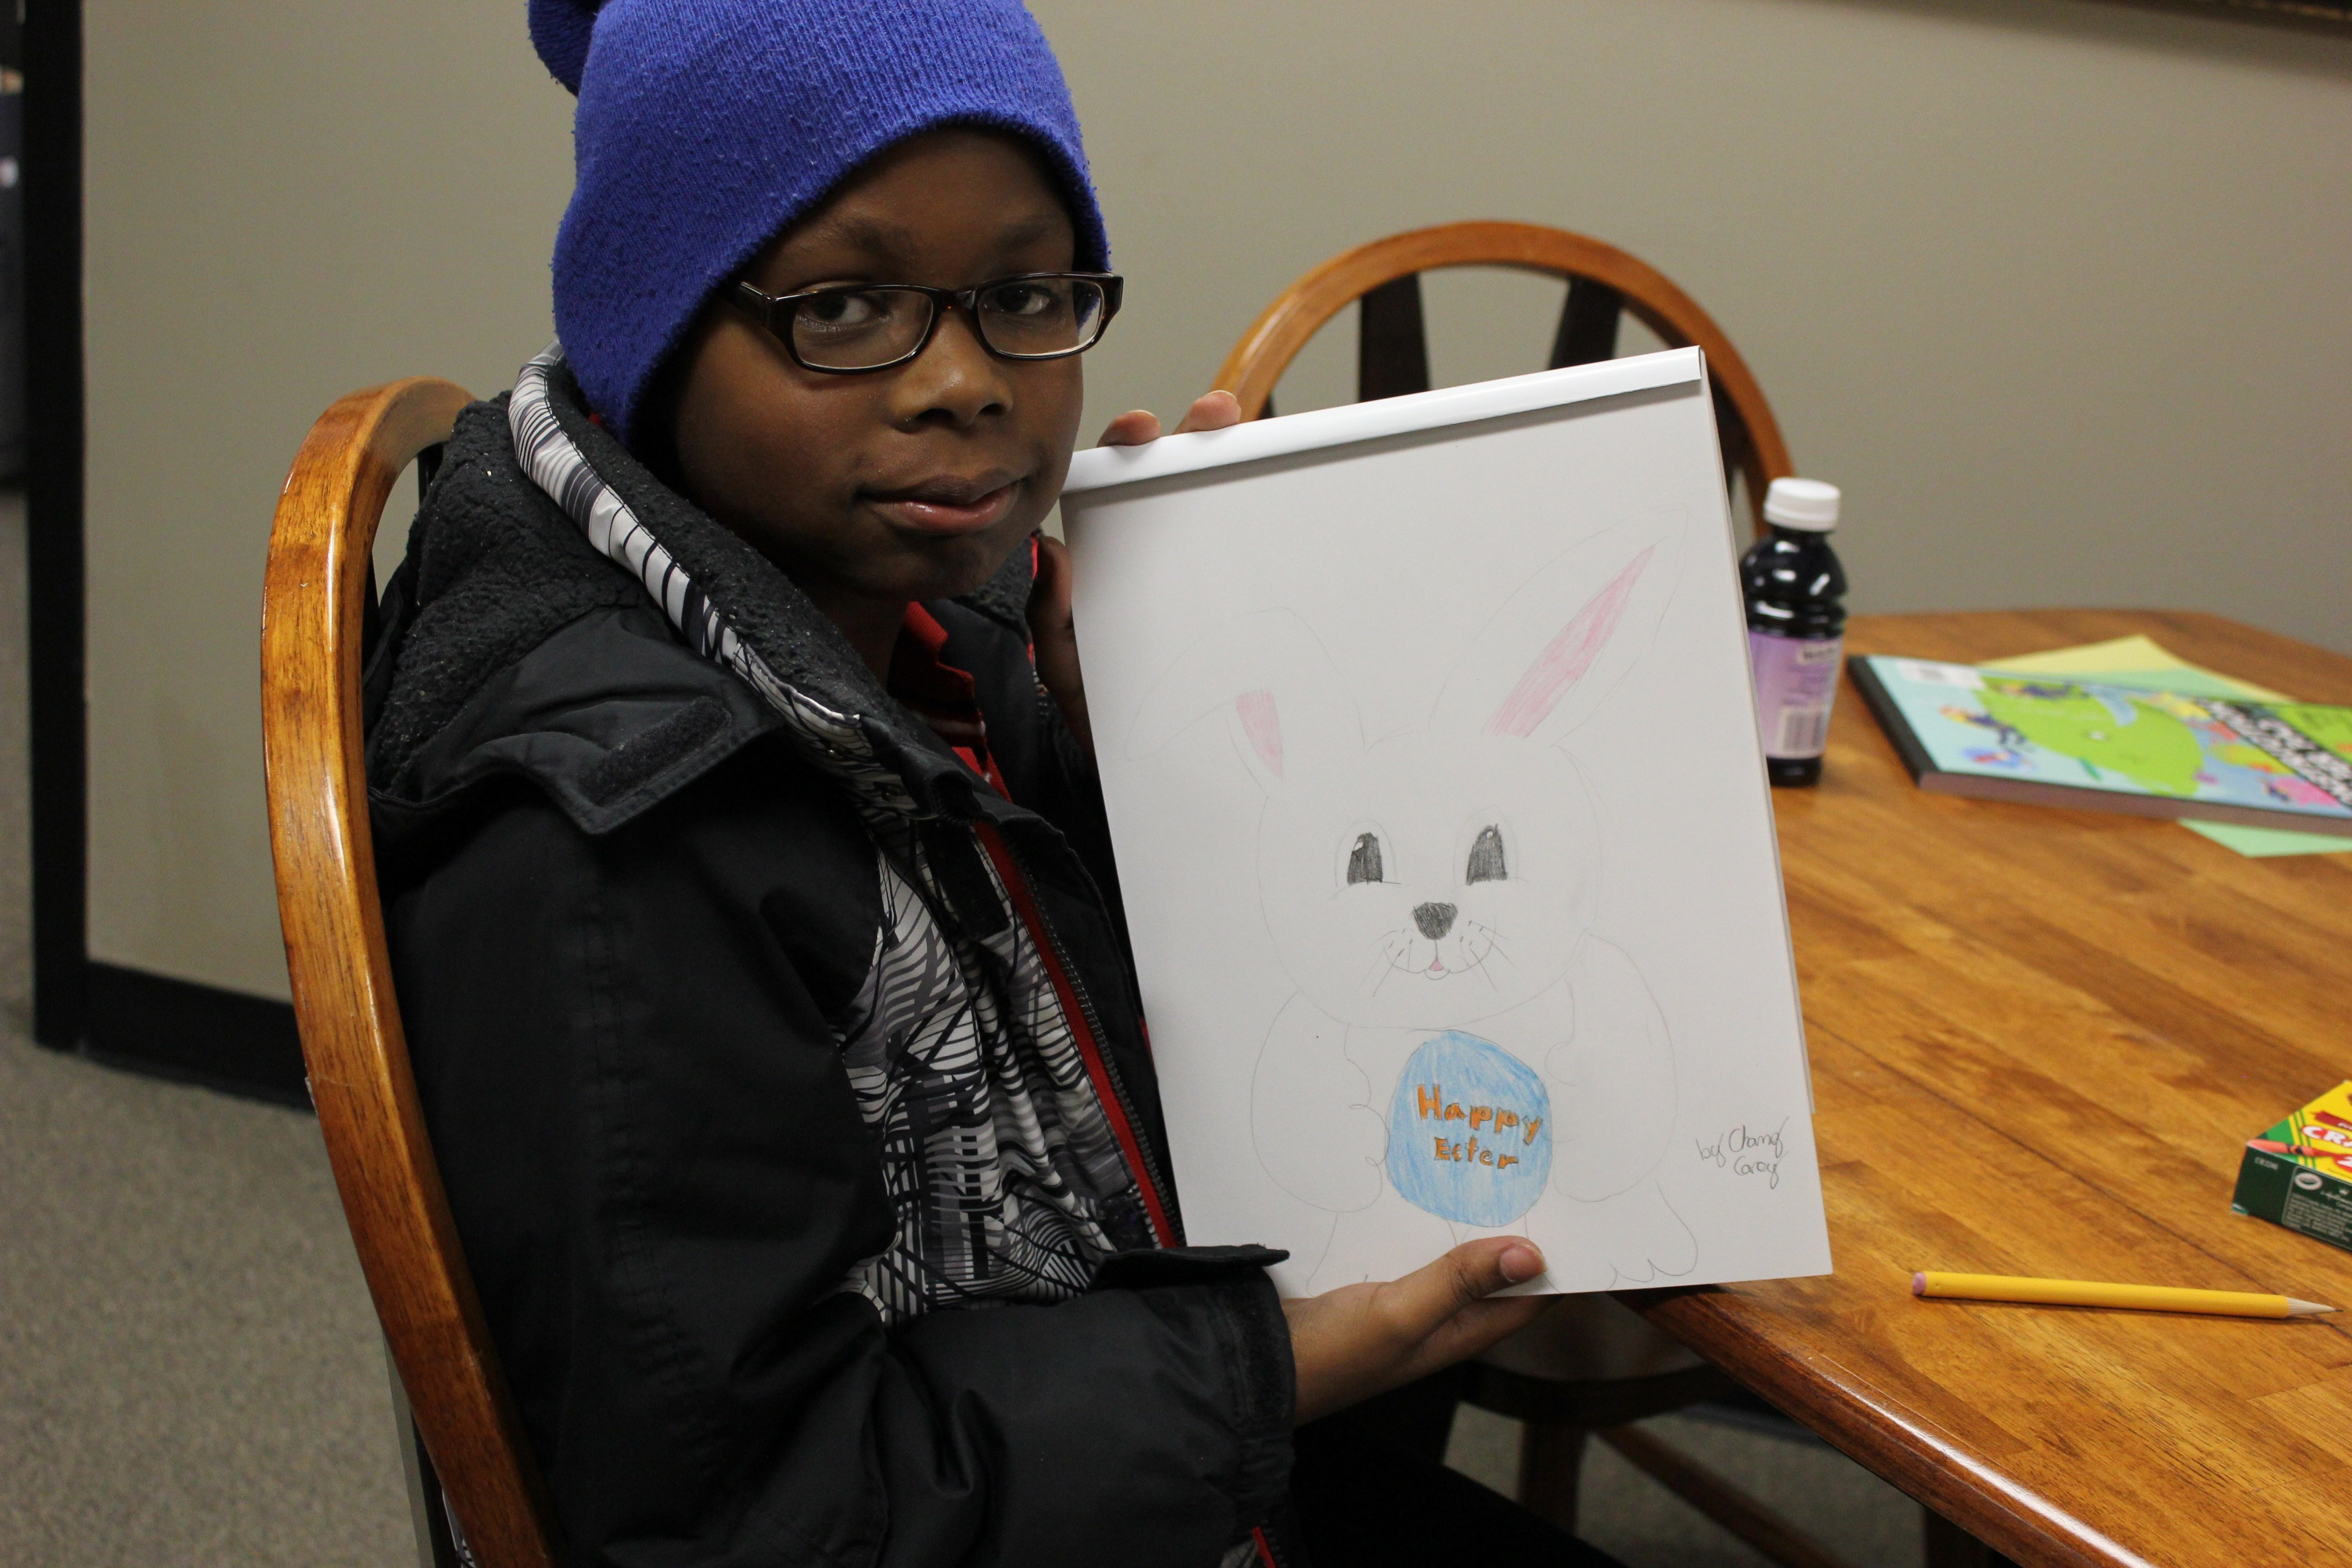 Chanz shows his drawing of the Easter bunny.